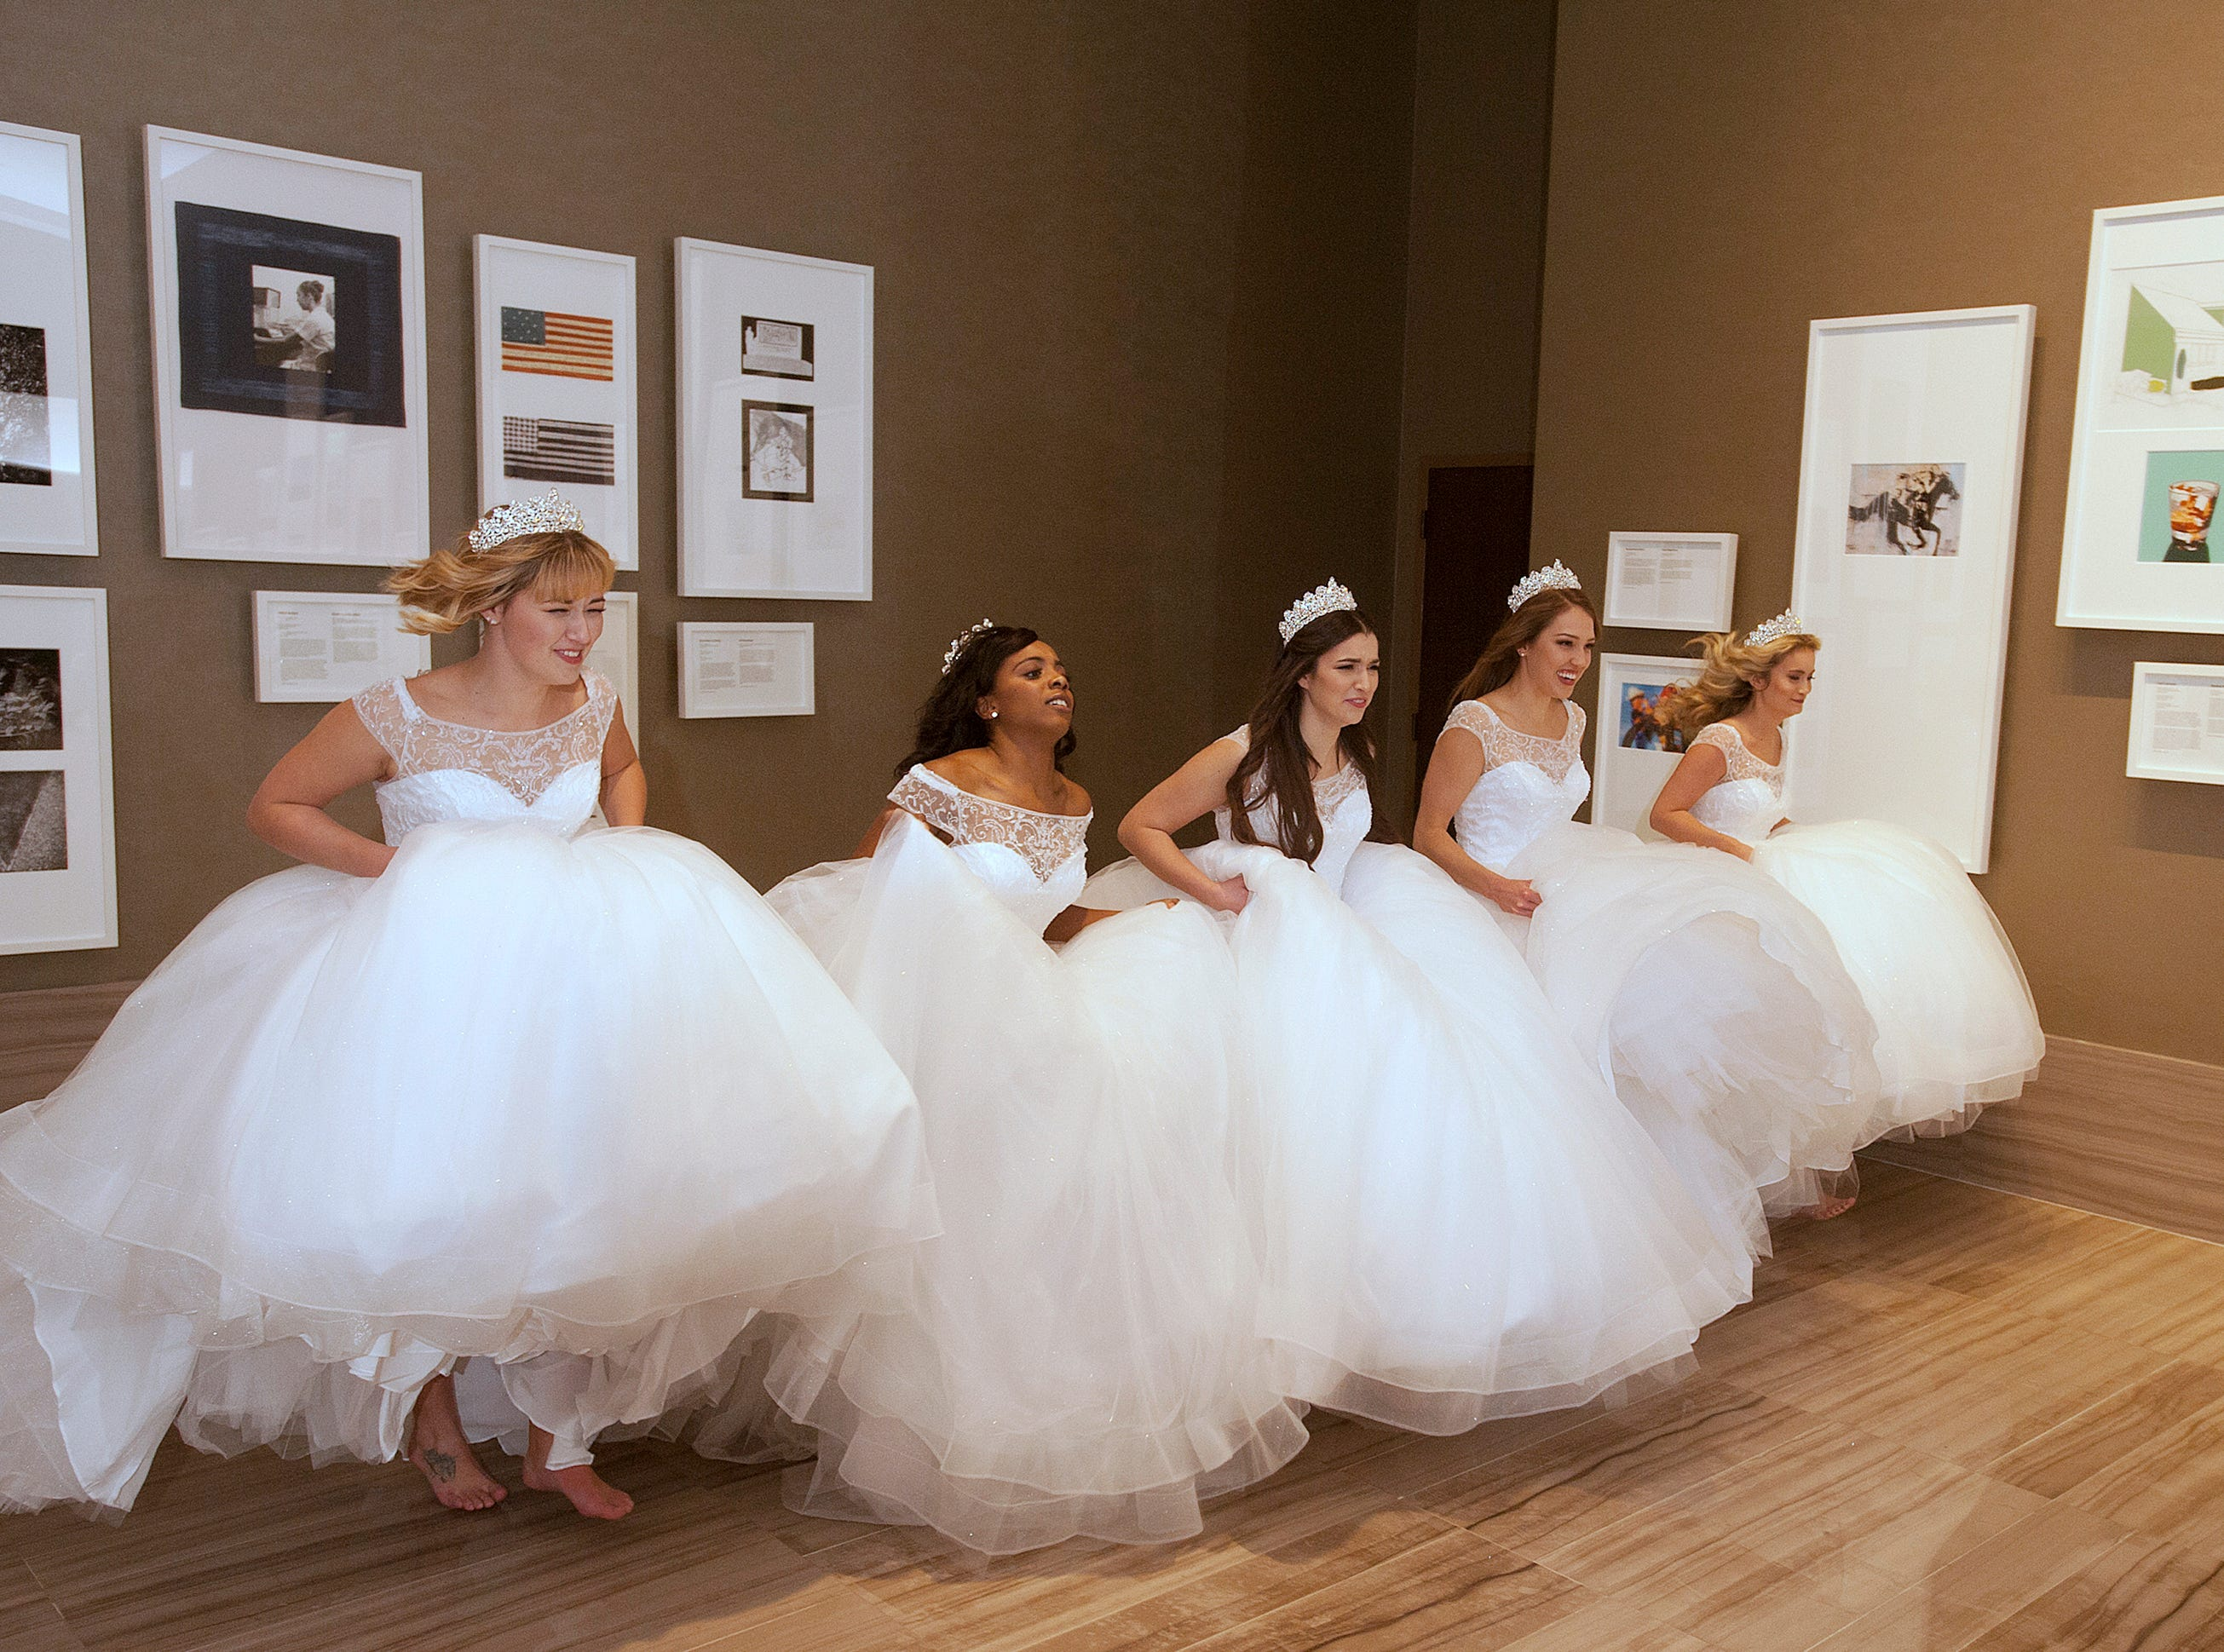 Kentucky Derby Festival princesses run together through the Omni Louisville Hotel. L-R: Kelsey Sutton, Brittany Patillo, Mary Baker, Elizabeth Seewer and Allison Spears. 06 January 2019